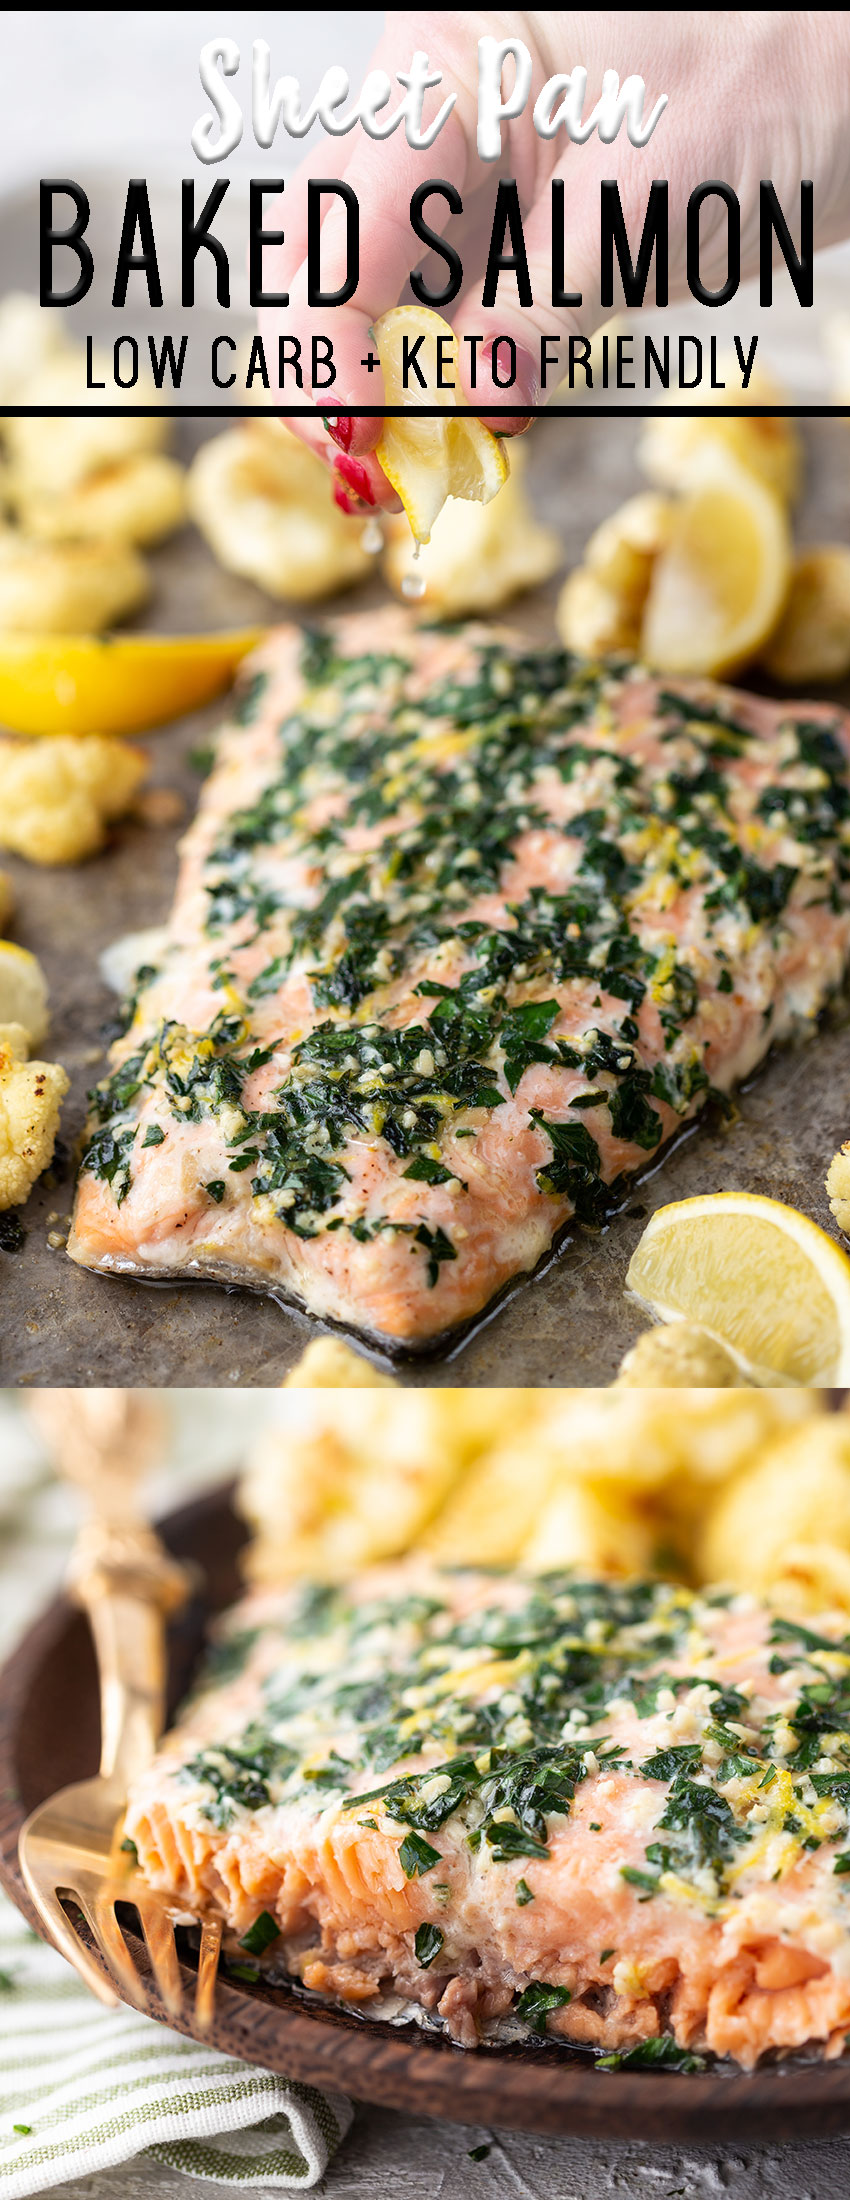 Sheet pan baked salmon with lemon and parsley.